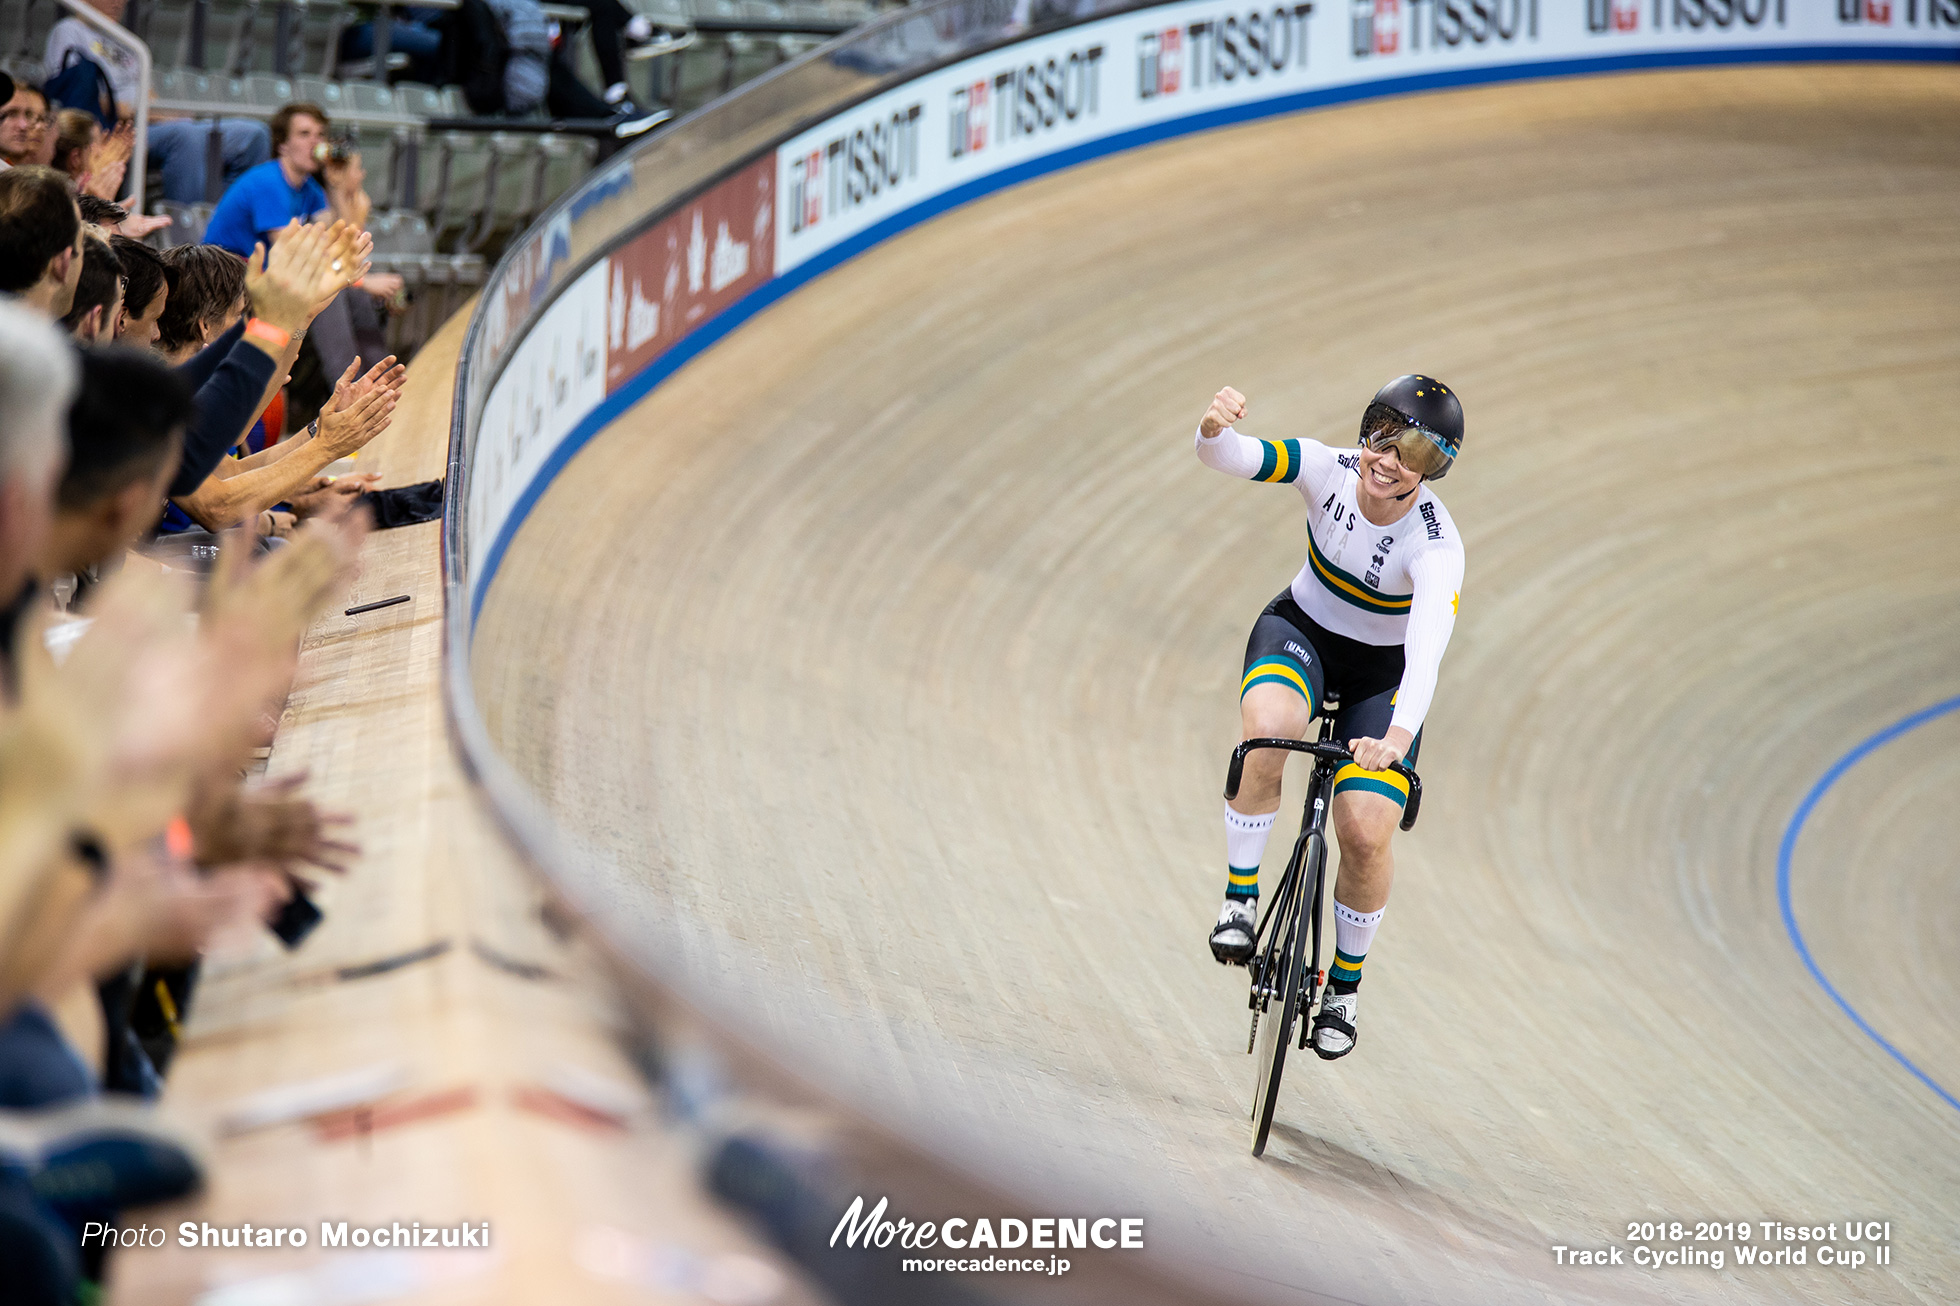 2018-2019 Tissot UCI Track Cycling World Cup II Women's Team Sprint Final